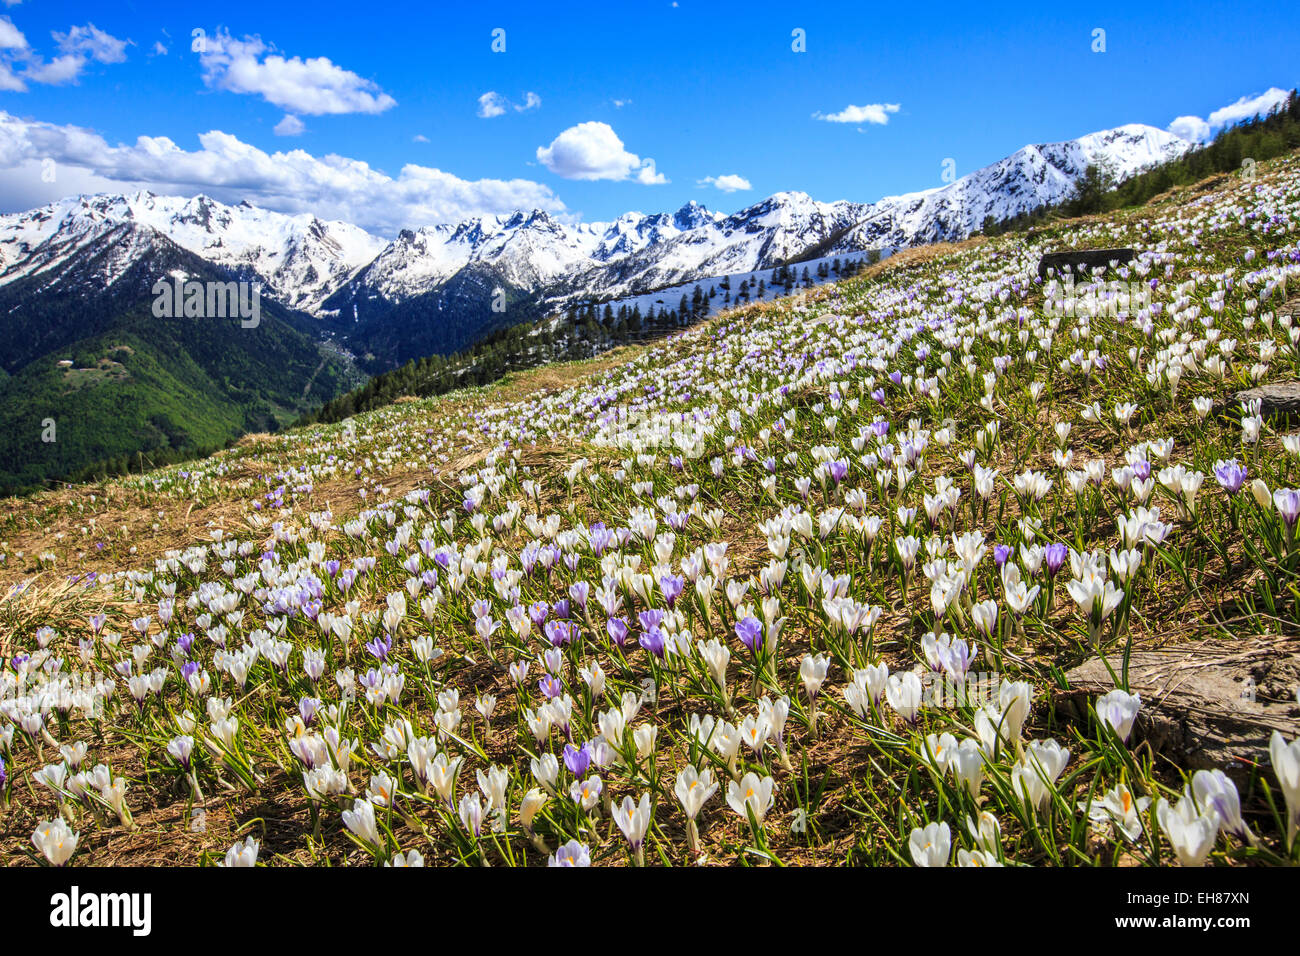 Crocus blooming on the pastures surrounding Cima Rosetta in the Orobie Alps, Lombardy, Italy, Europe - Stock Image